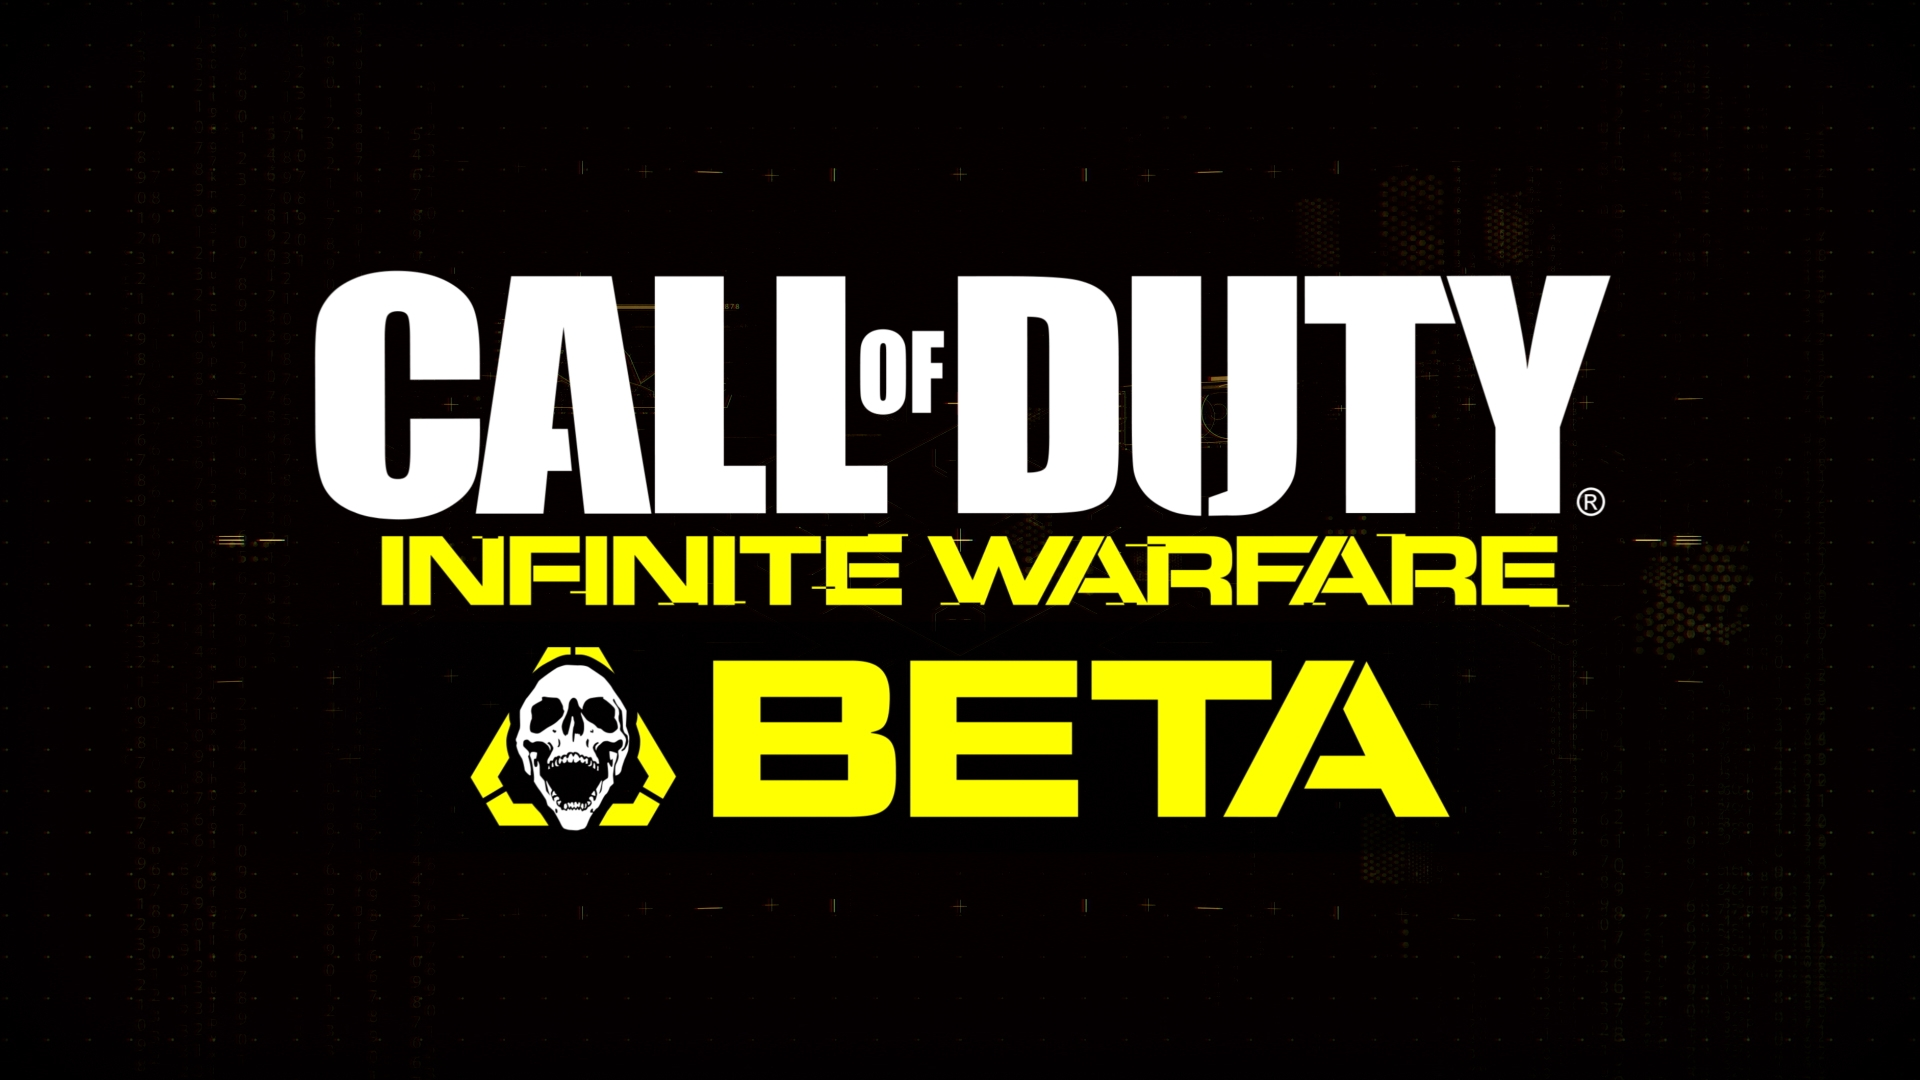 لعبة Call of Duty Infinite Warfare